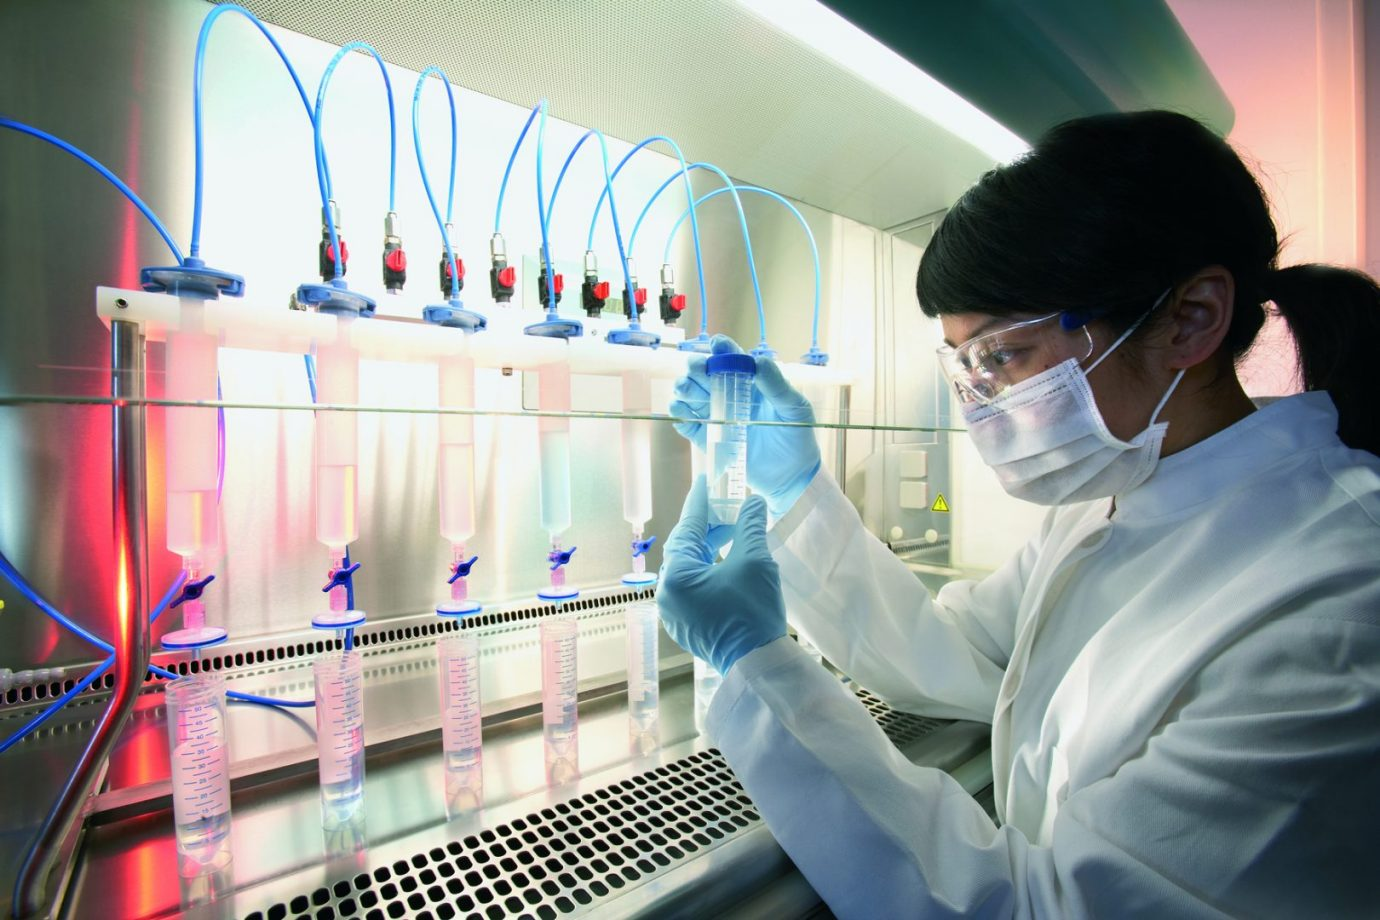 bioindustry The BioIndustry Association Calls for New Fund to Democratise Biotech Opportunities